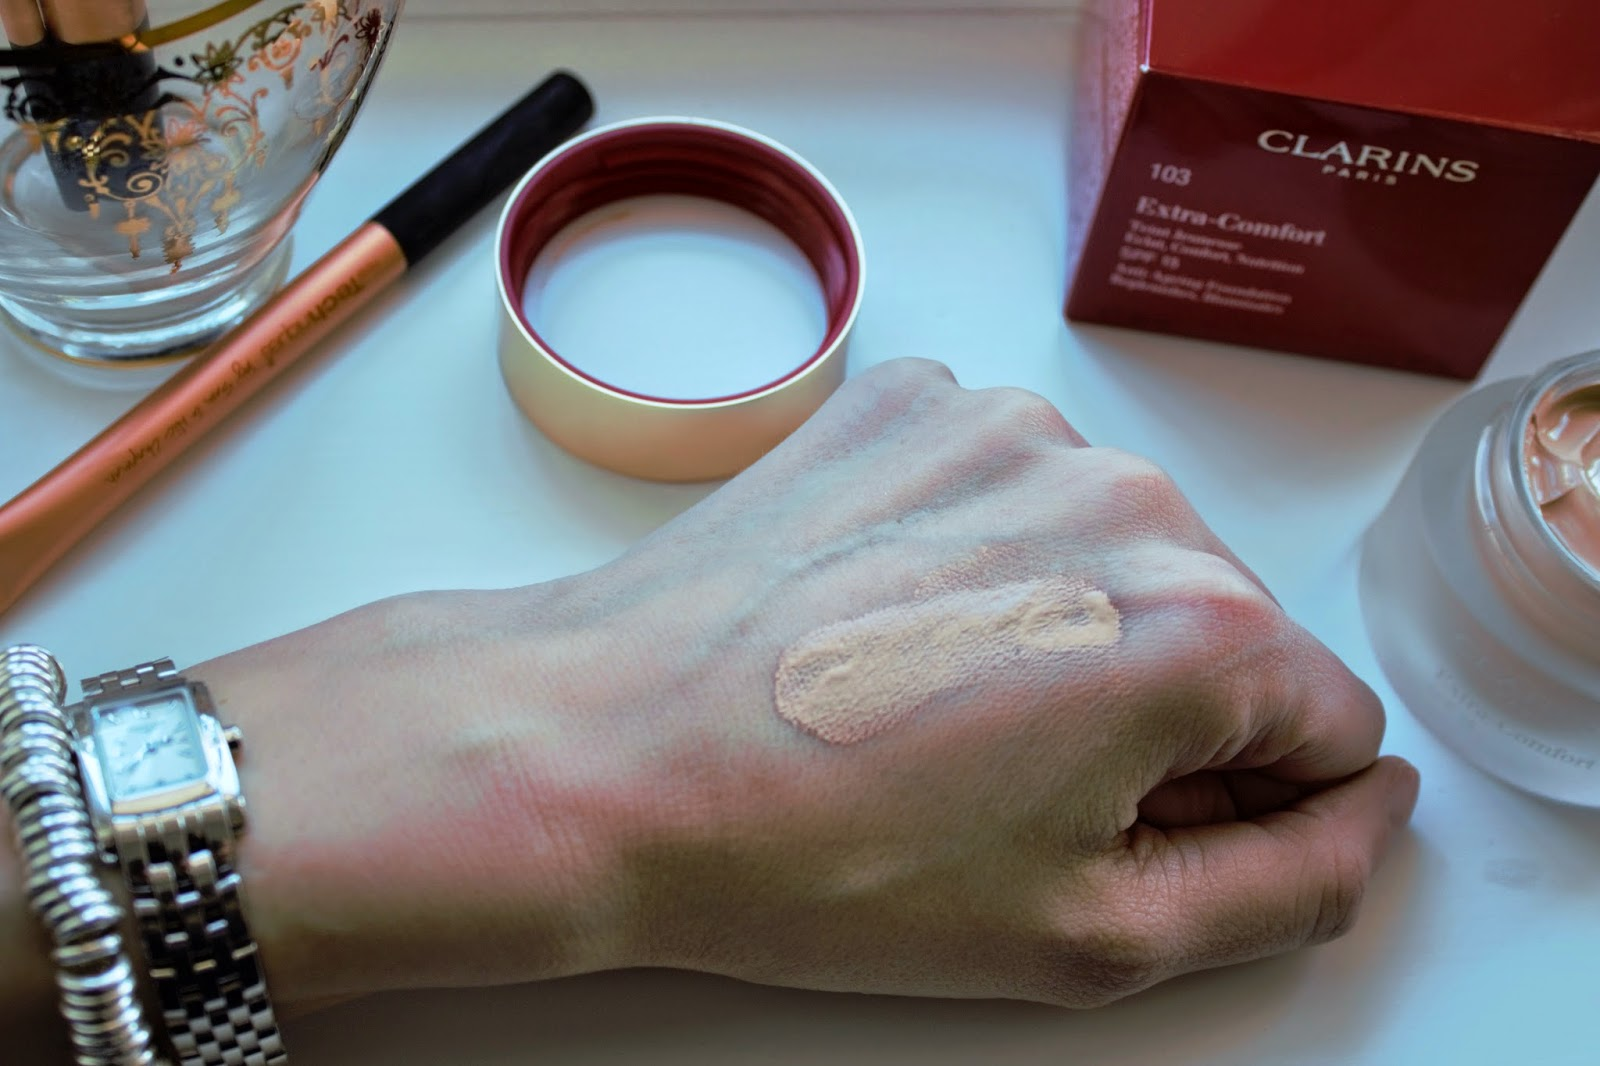 Clarins Extra Comfort Foundation swatch